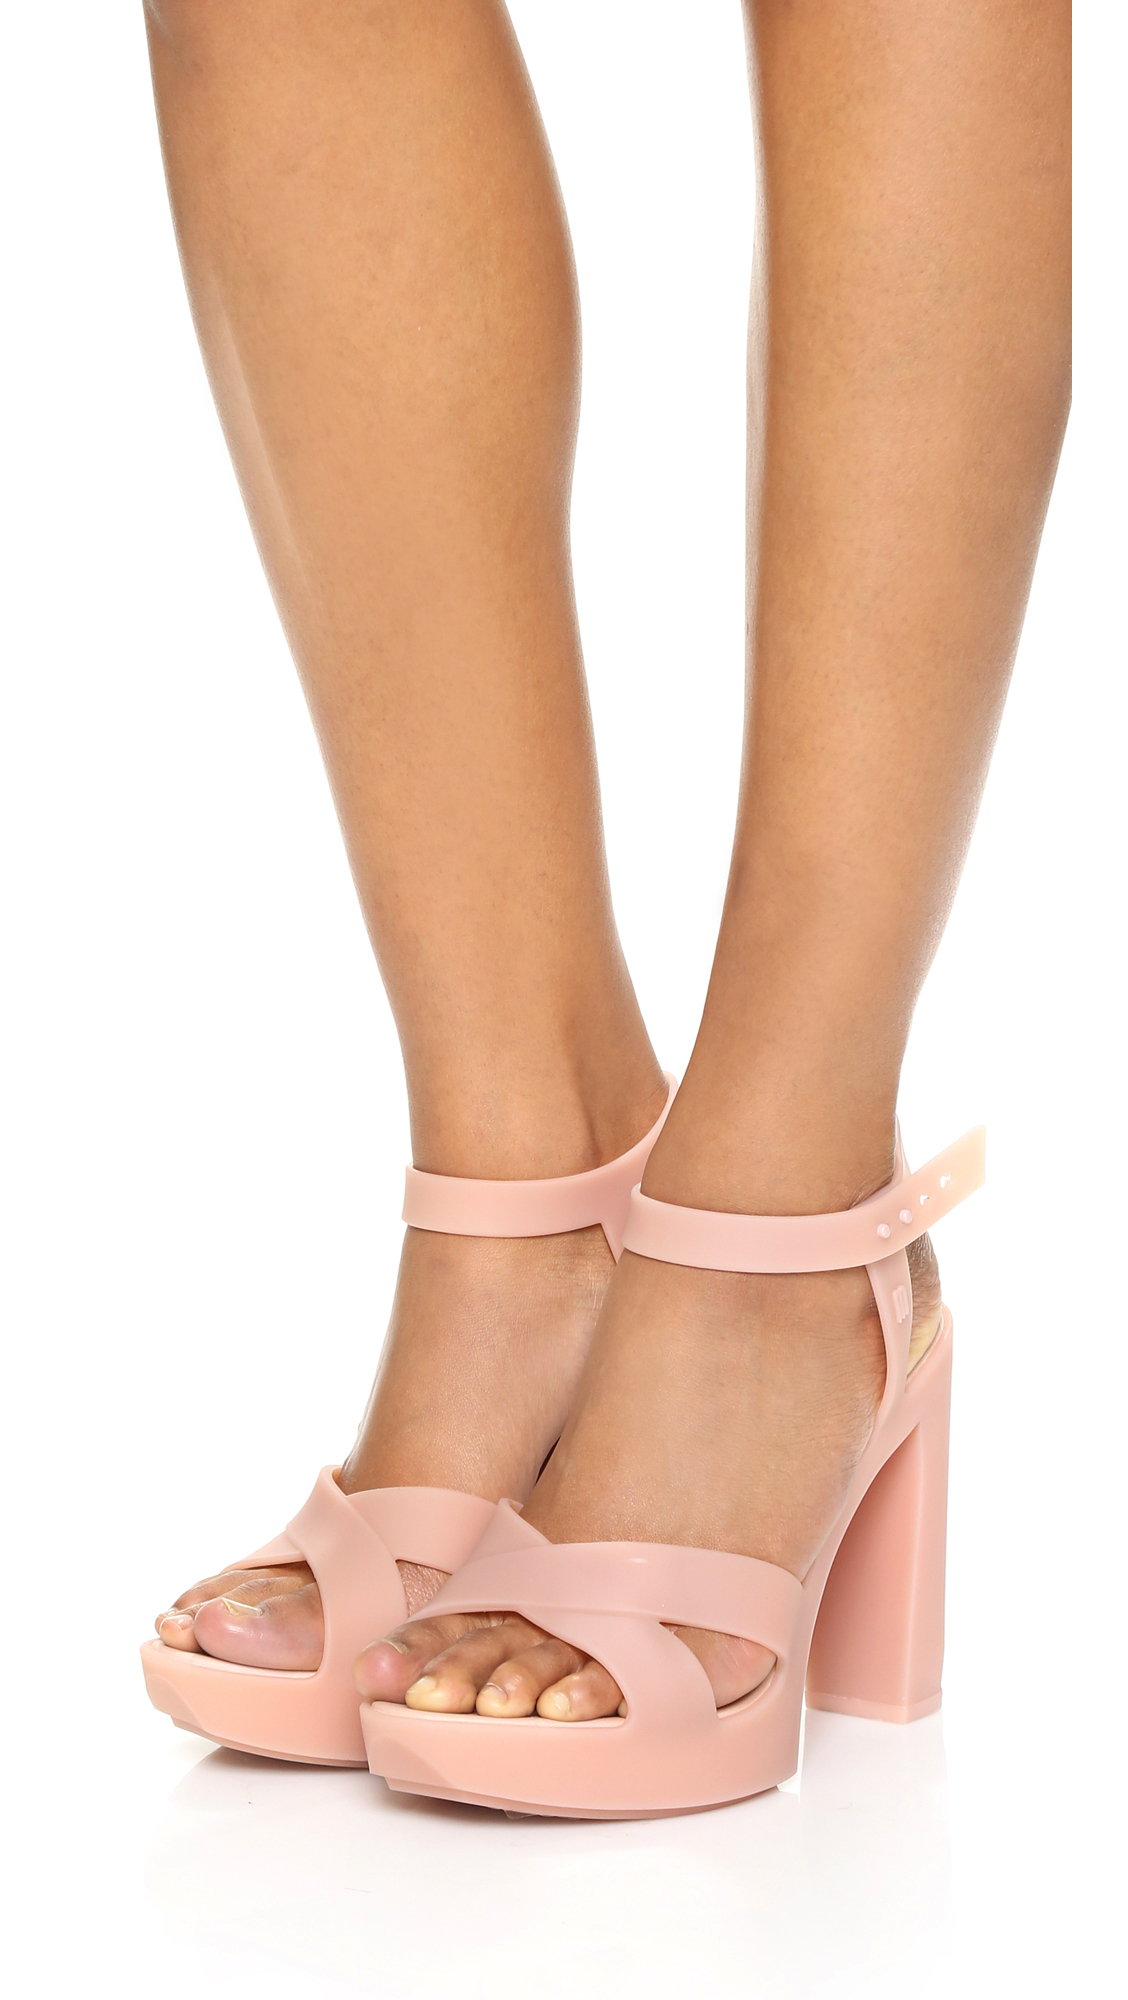 Lyst - Melissa Classic Lady Sandals In Pink-7227